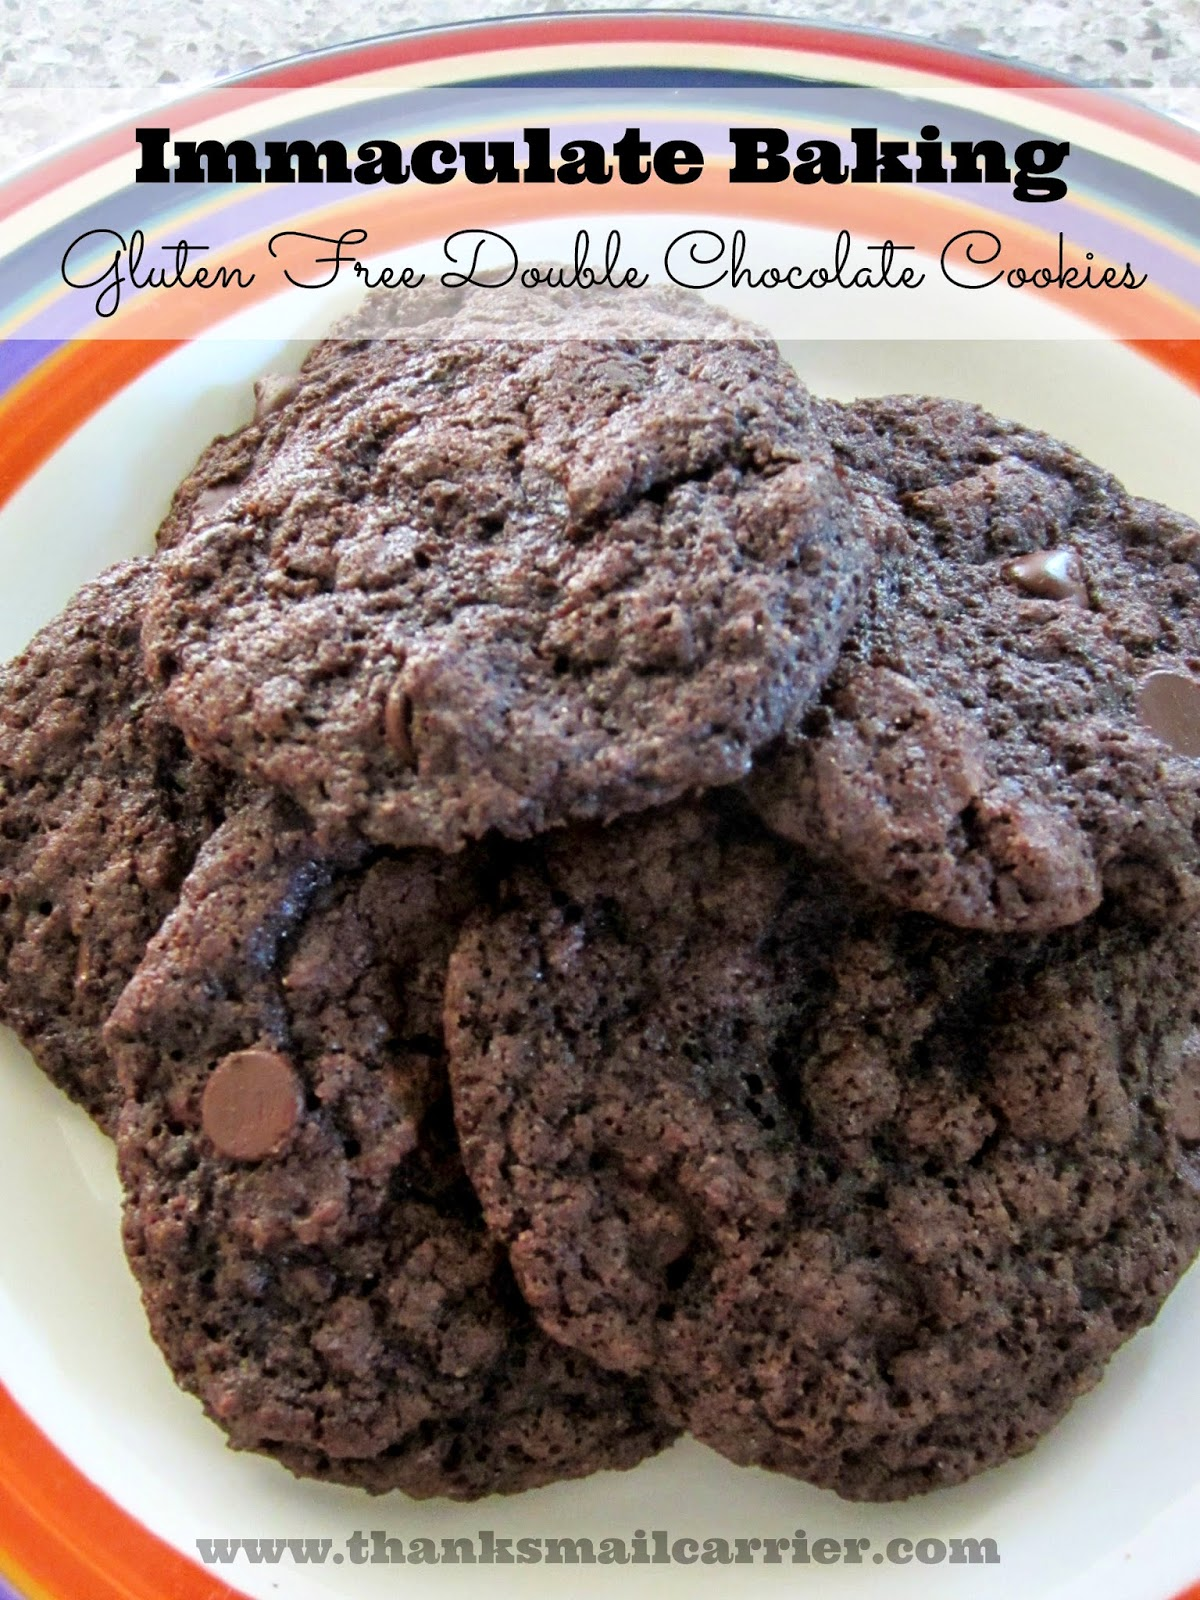 Immaculate Baking cookies